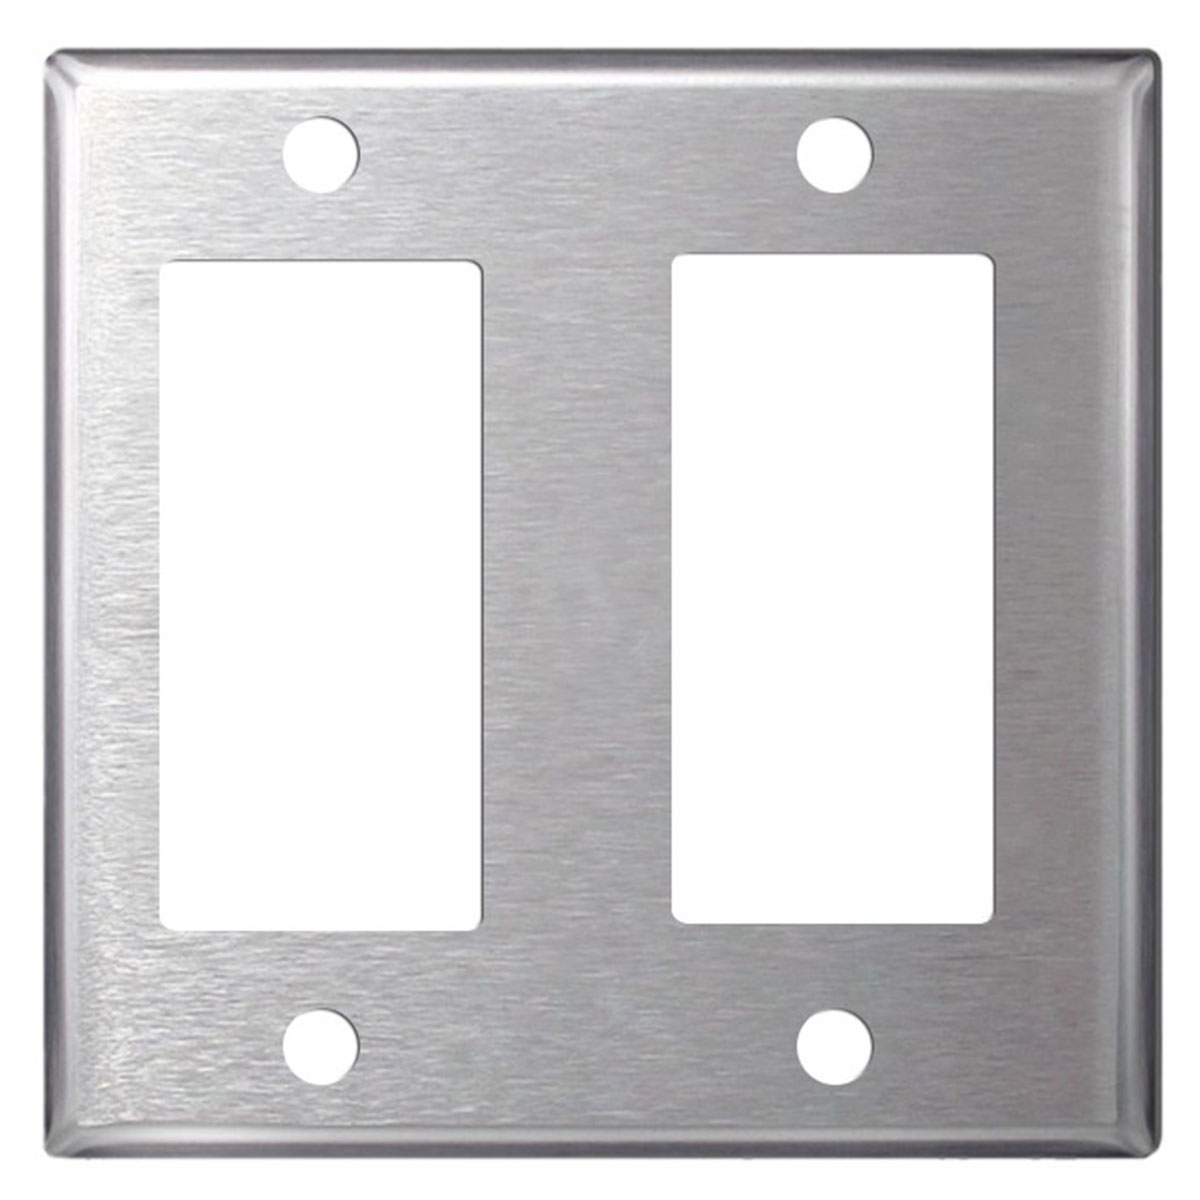 Blank Switch Plate Impressive Stainless Steel Wall Plates  Single Double Gang  Blank Toggle Decorating Design